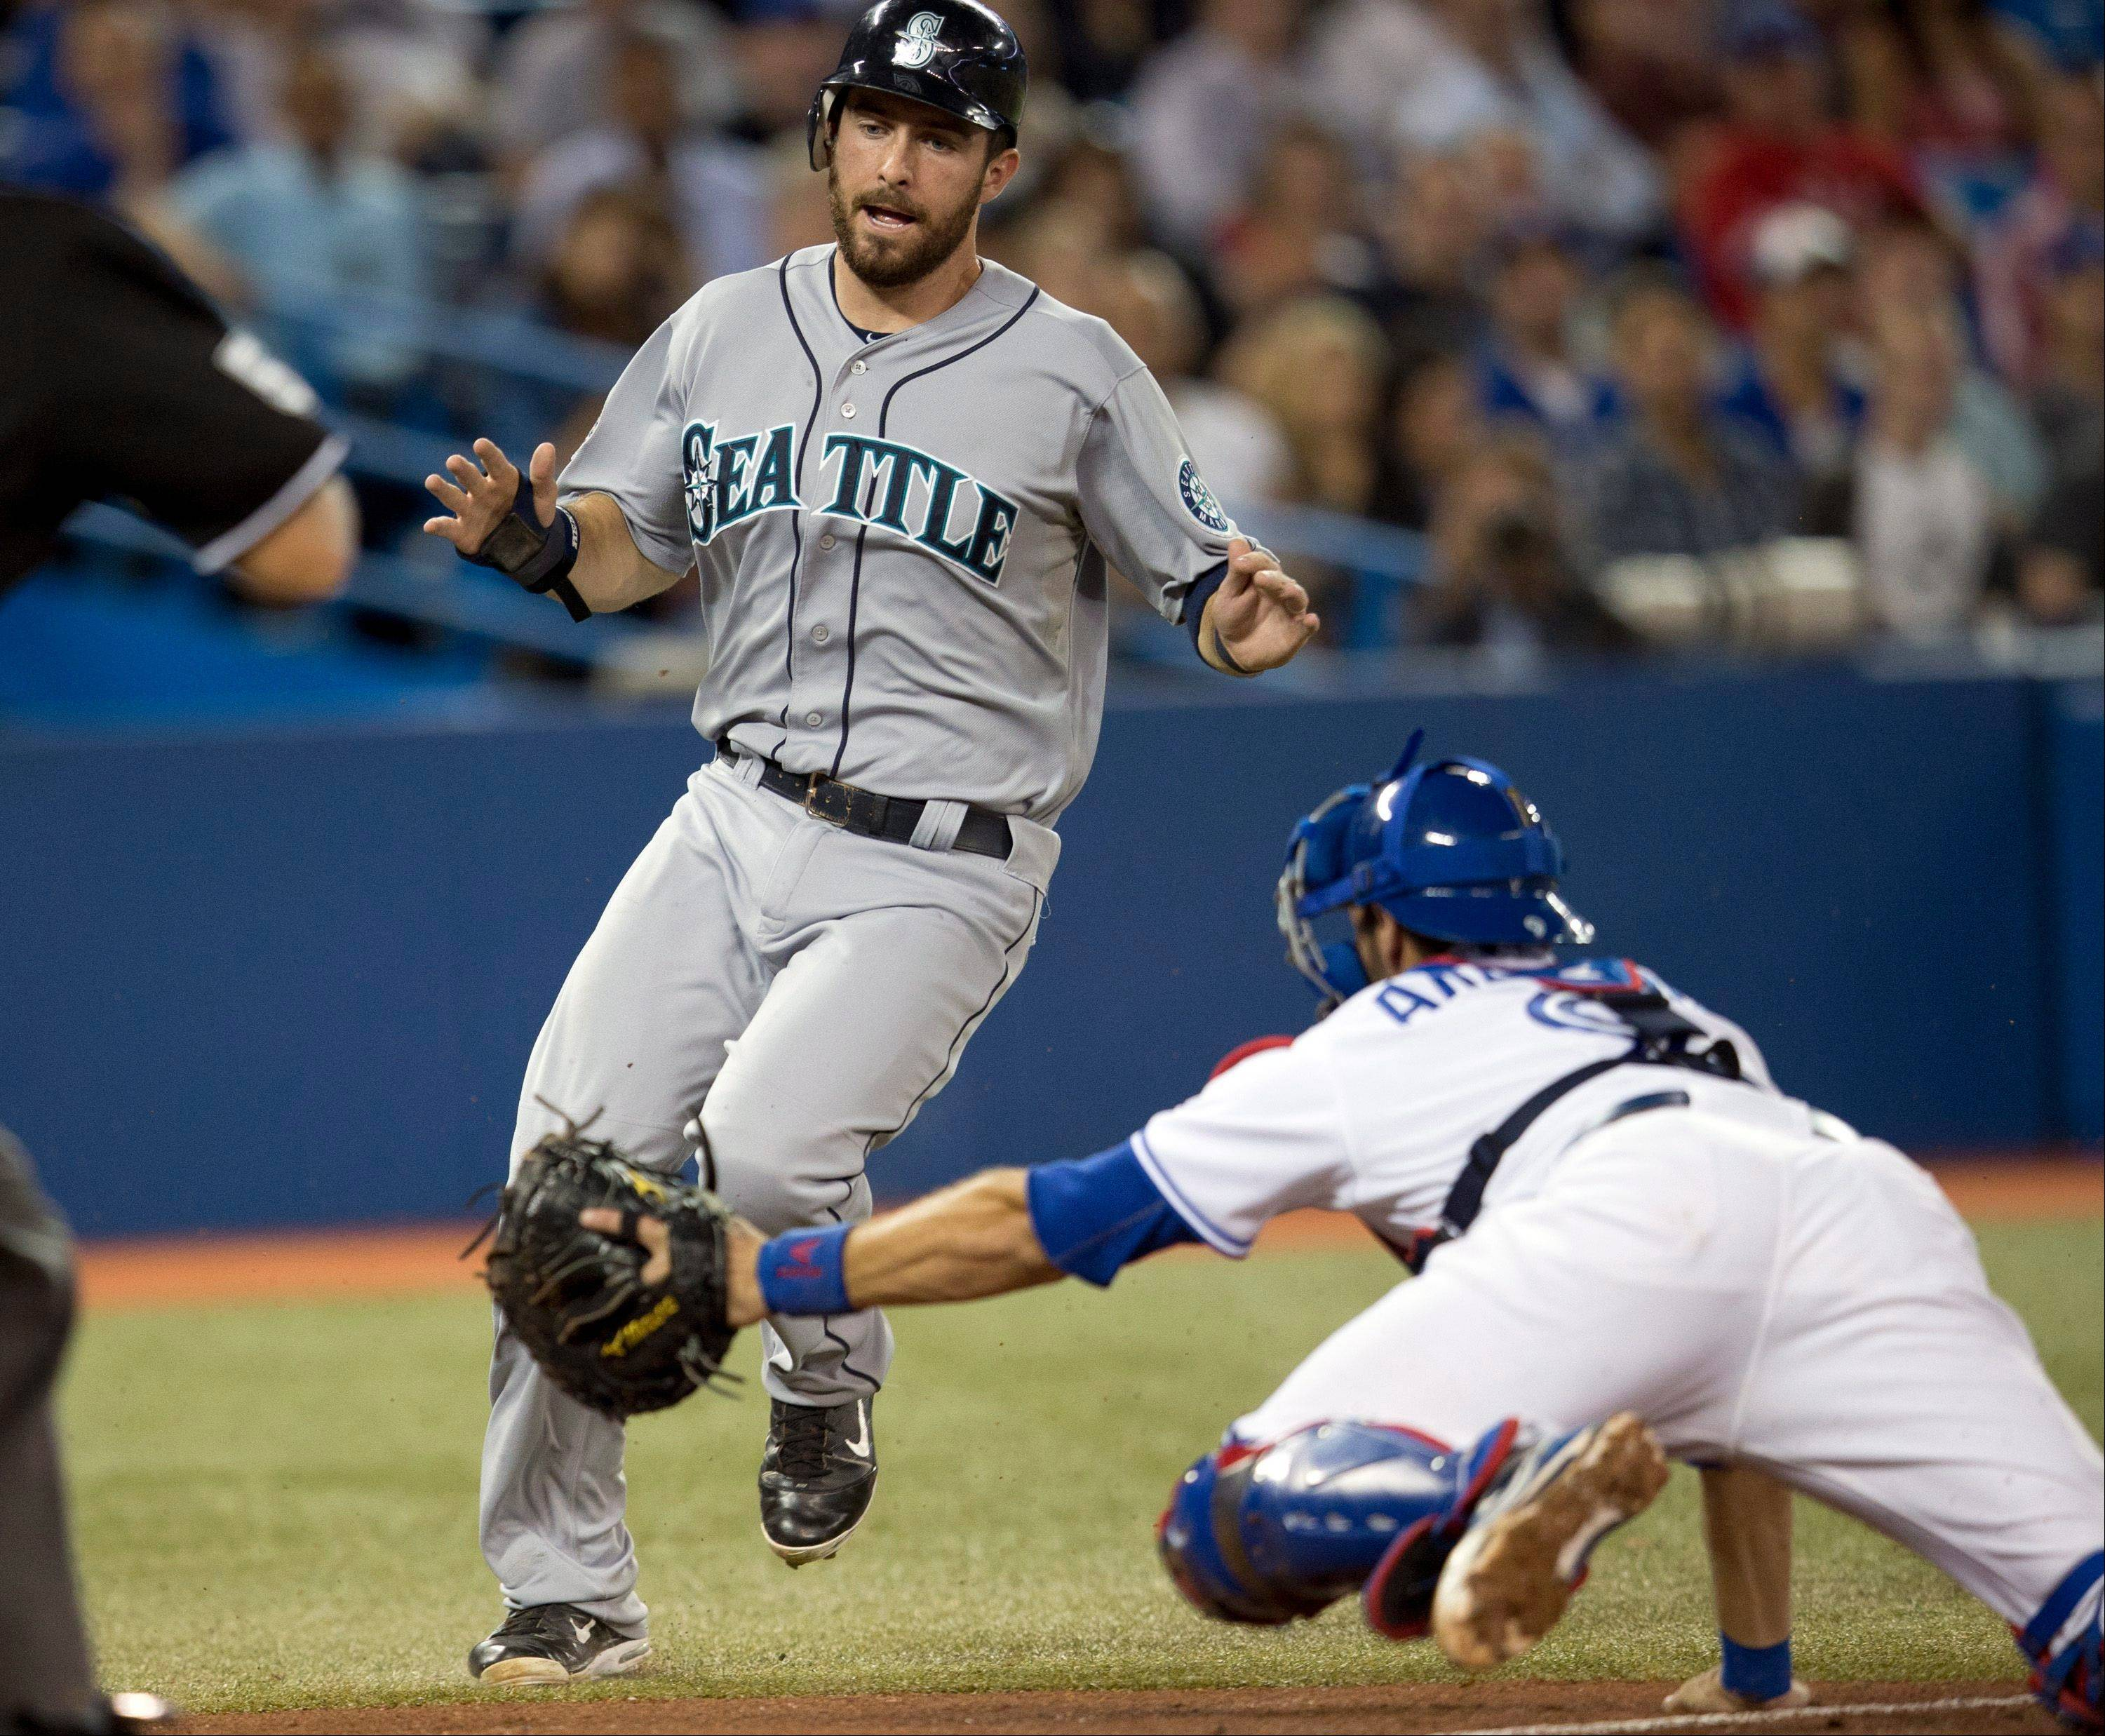 Seattle's Dustin Ackley dodges the tag of Blue Jays catcher J.P. Arencibia to score during the fourth inning Wednesday in Toronto.